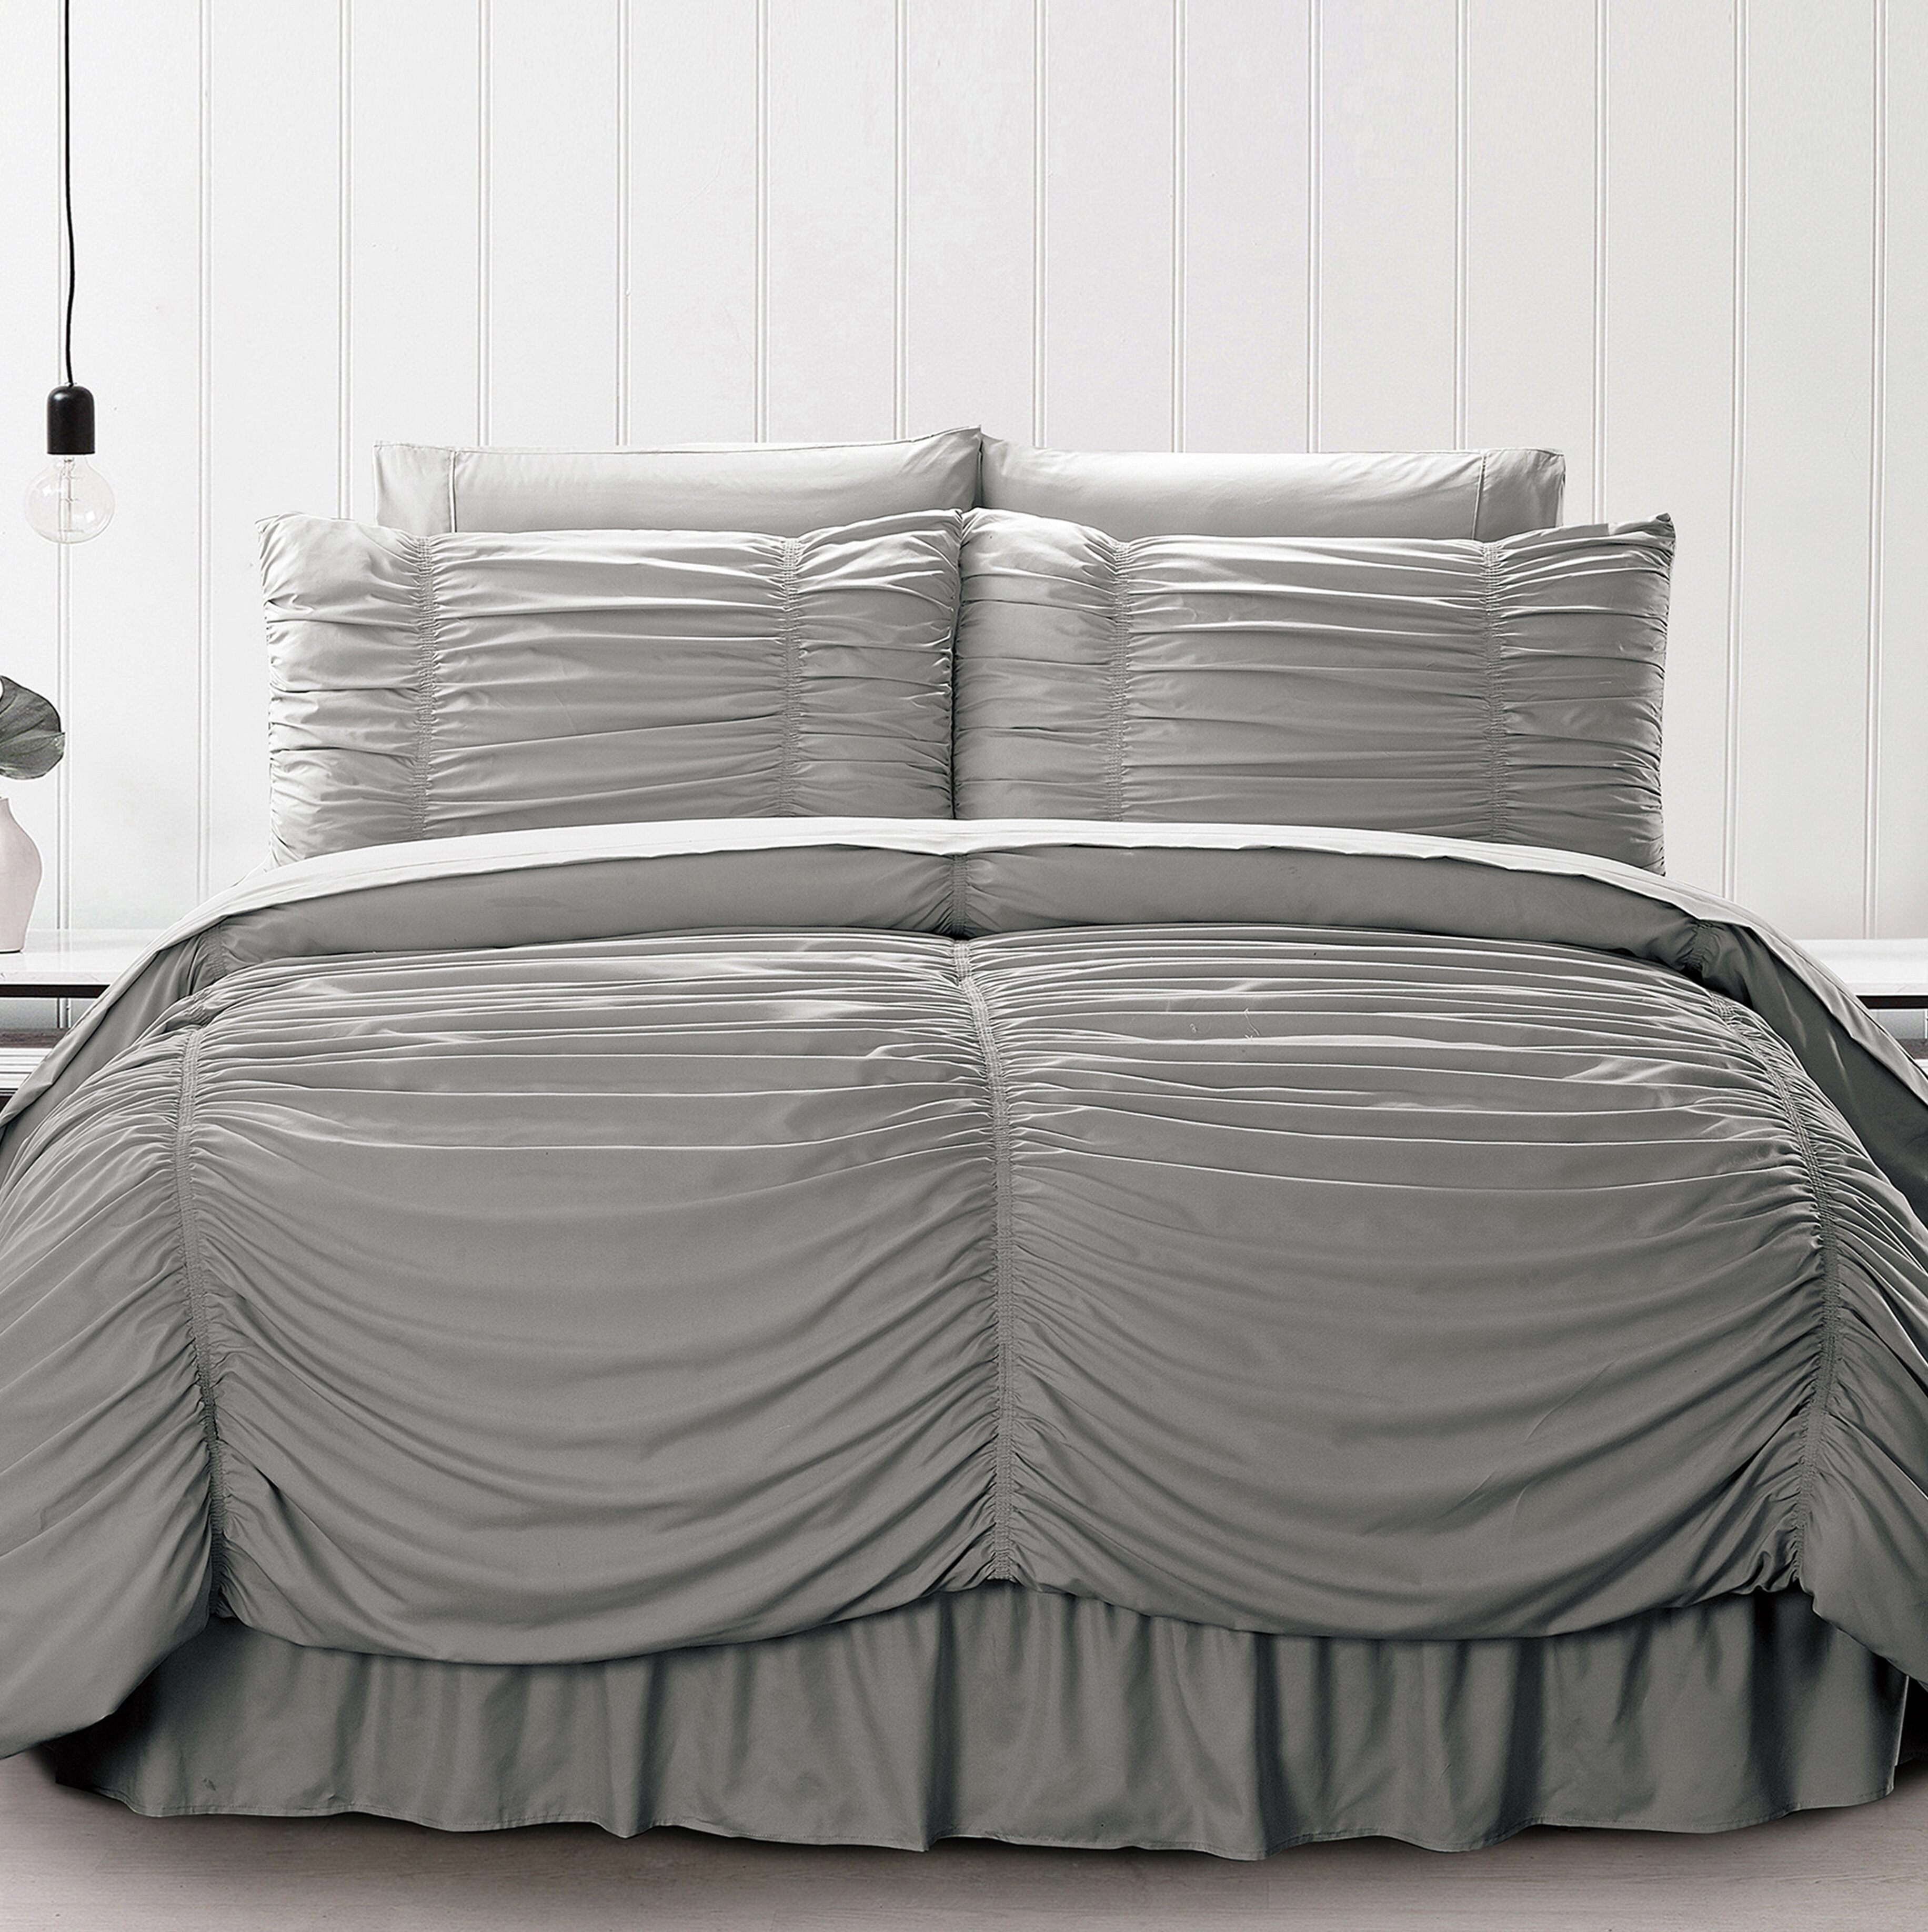 and White Comforter Set 8-Piece Luxury Pintuck Pleated Stripe Black Gray